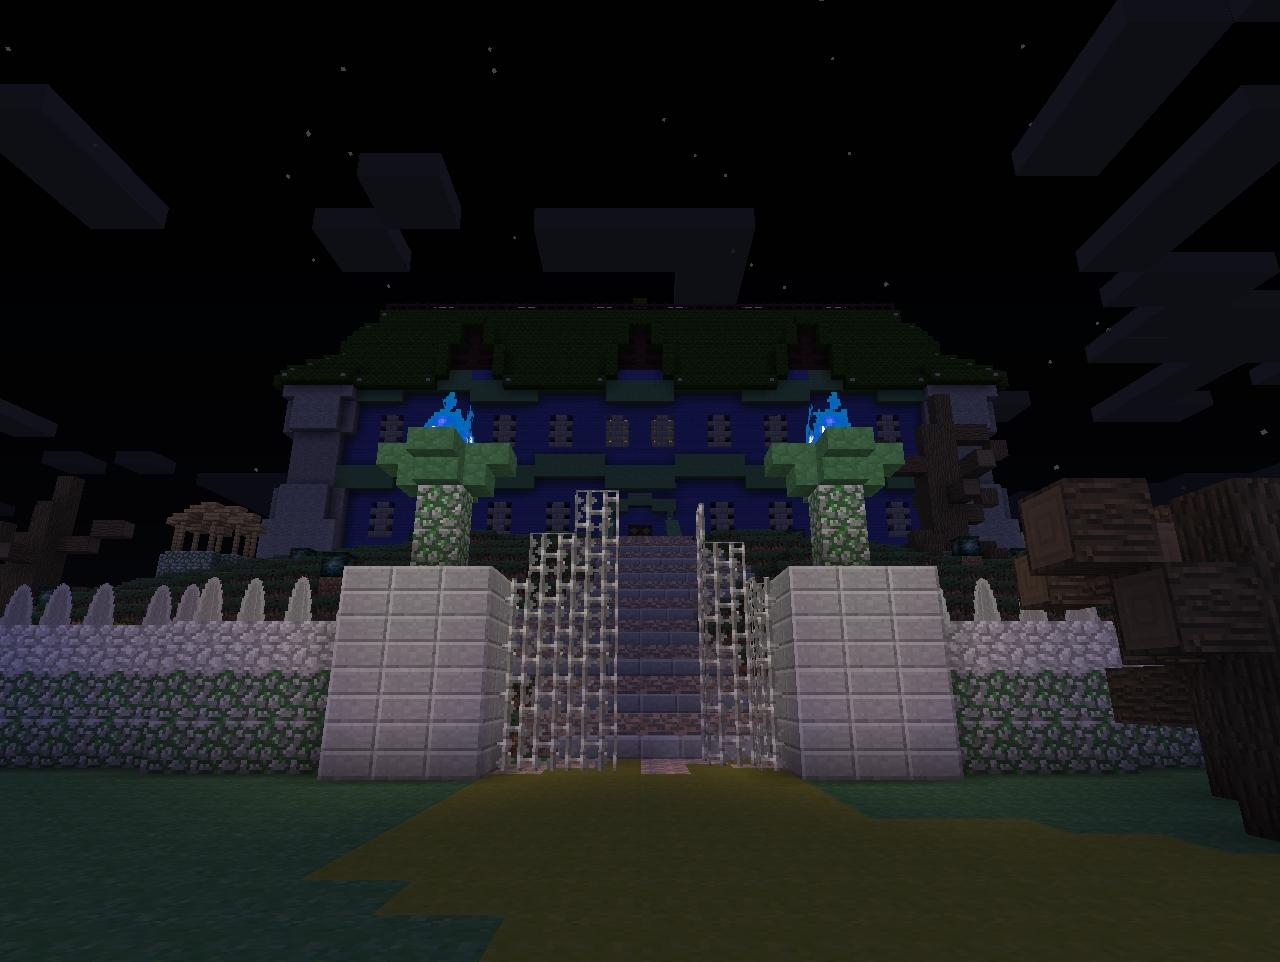 Luigi S Mansion Resource Pack Minecraft Texture Pack